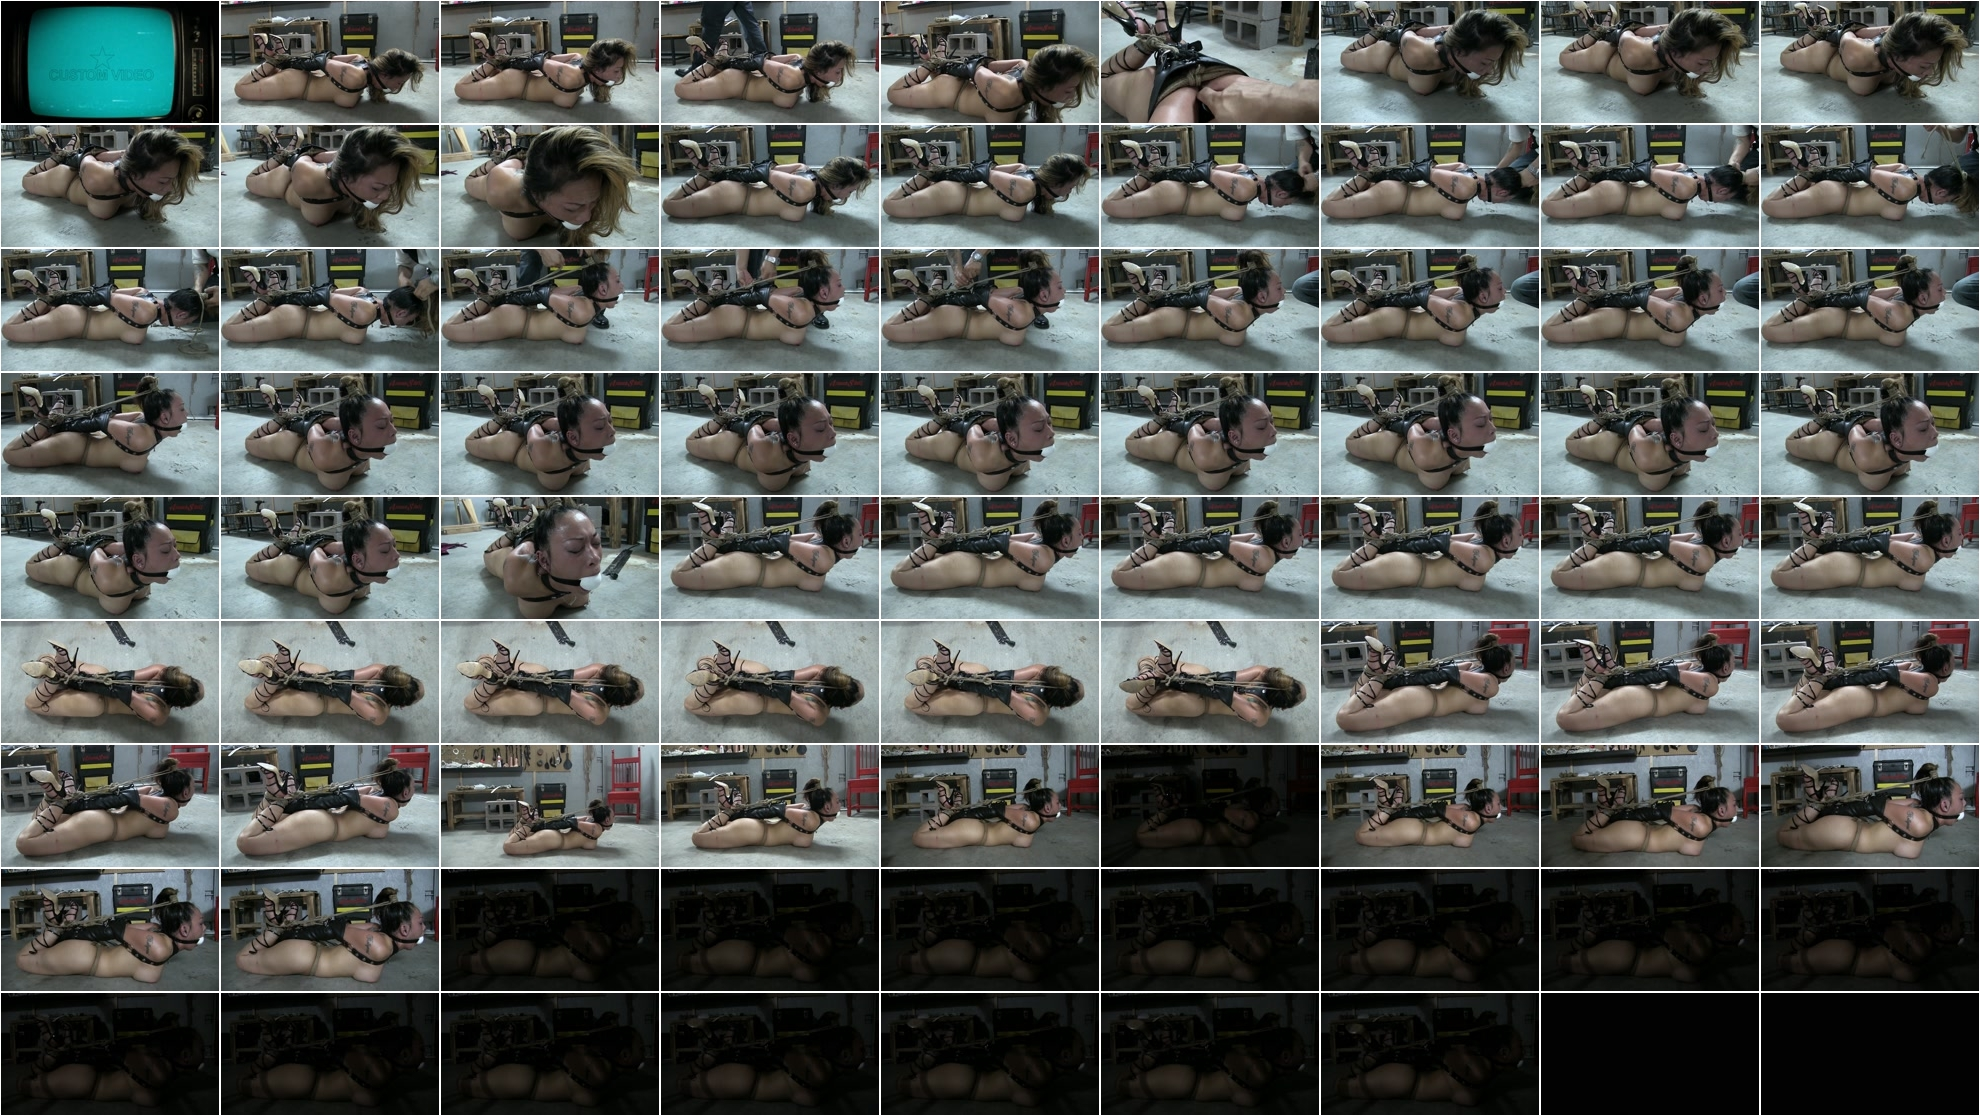 Unfaithful_Wife_Custom_Video_Part_3_-_Penance_For_Infidelity.C3,